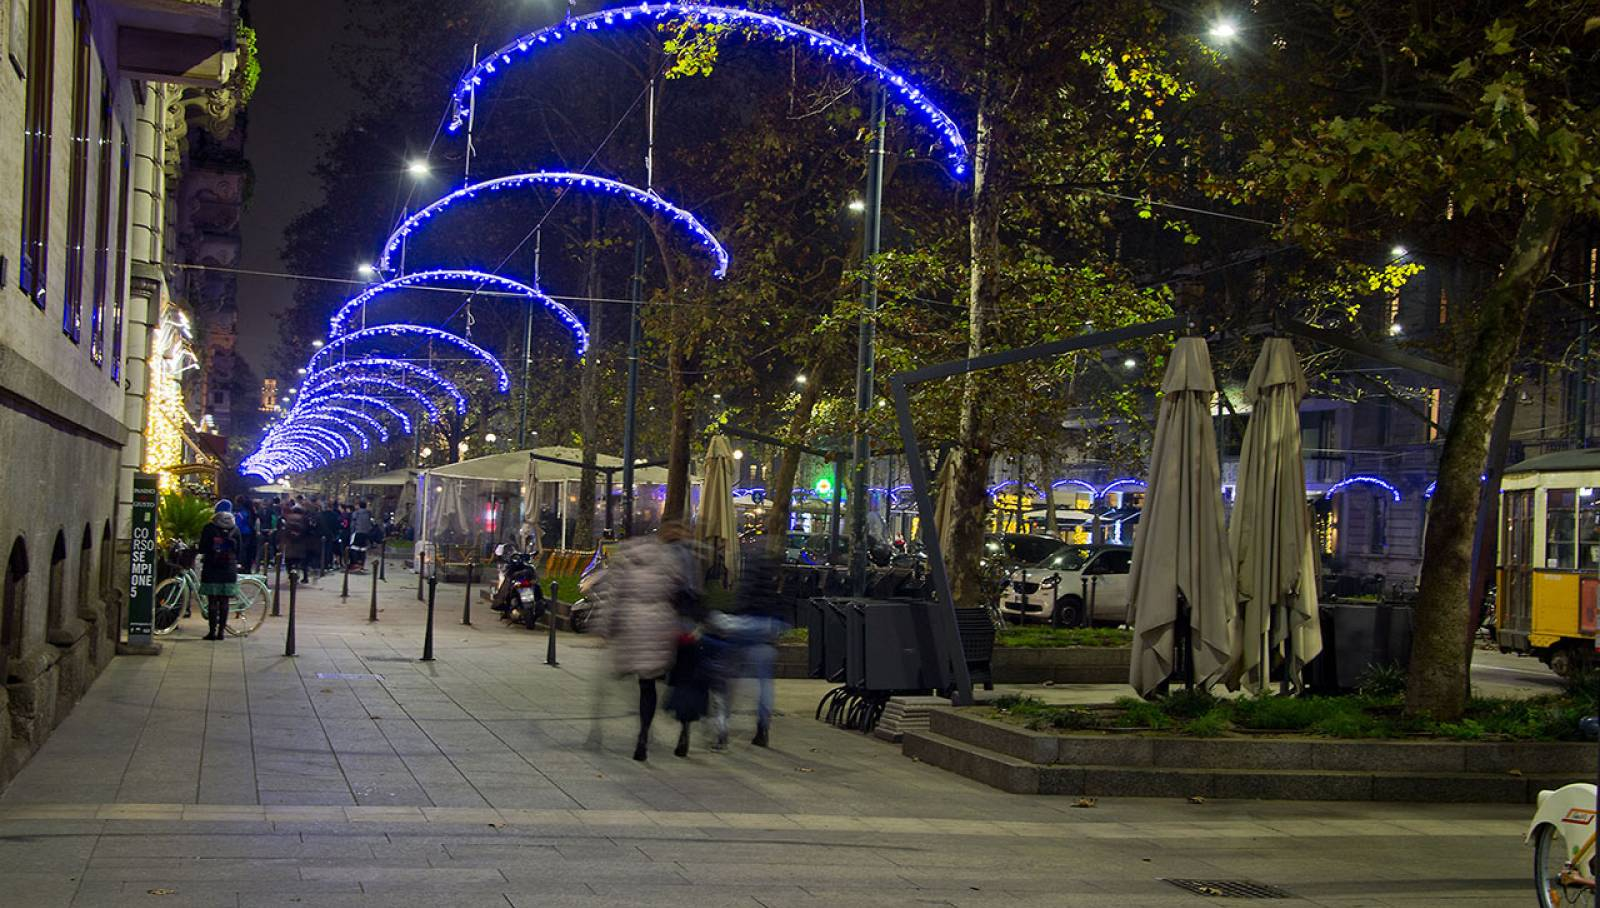 IGPDecaux Milan lights for Nexi